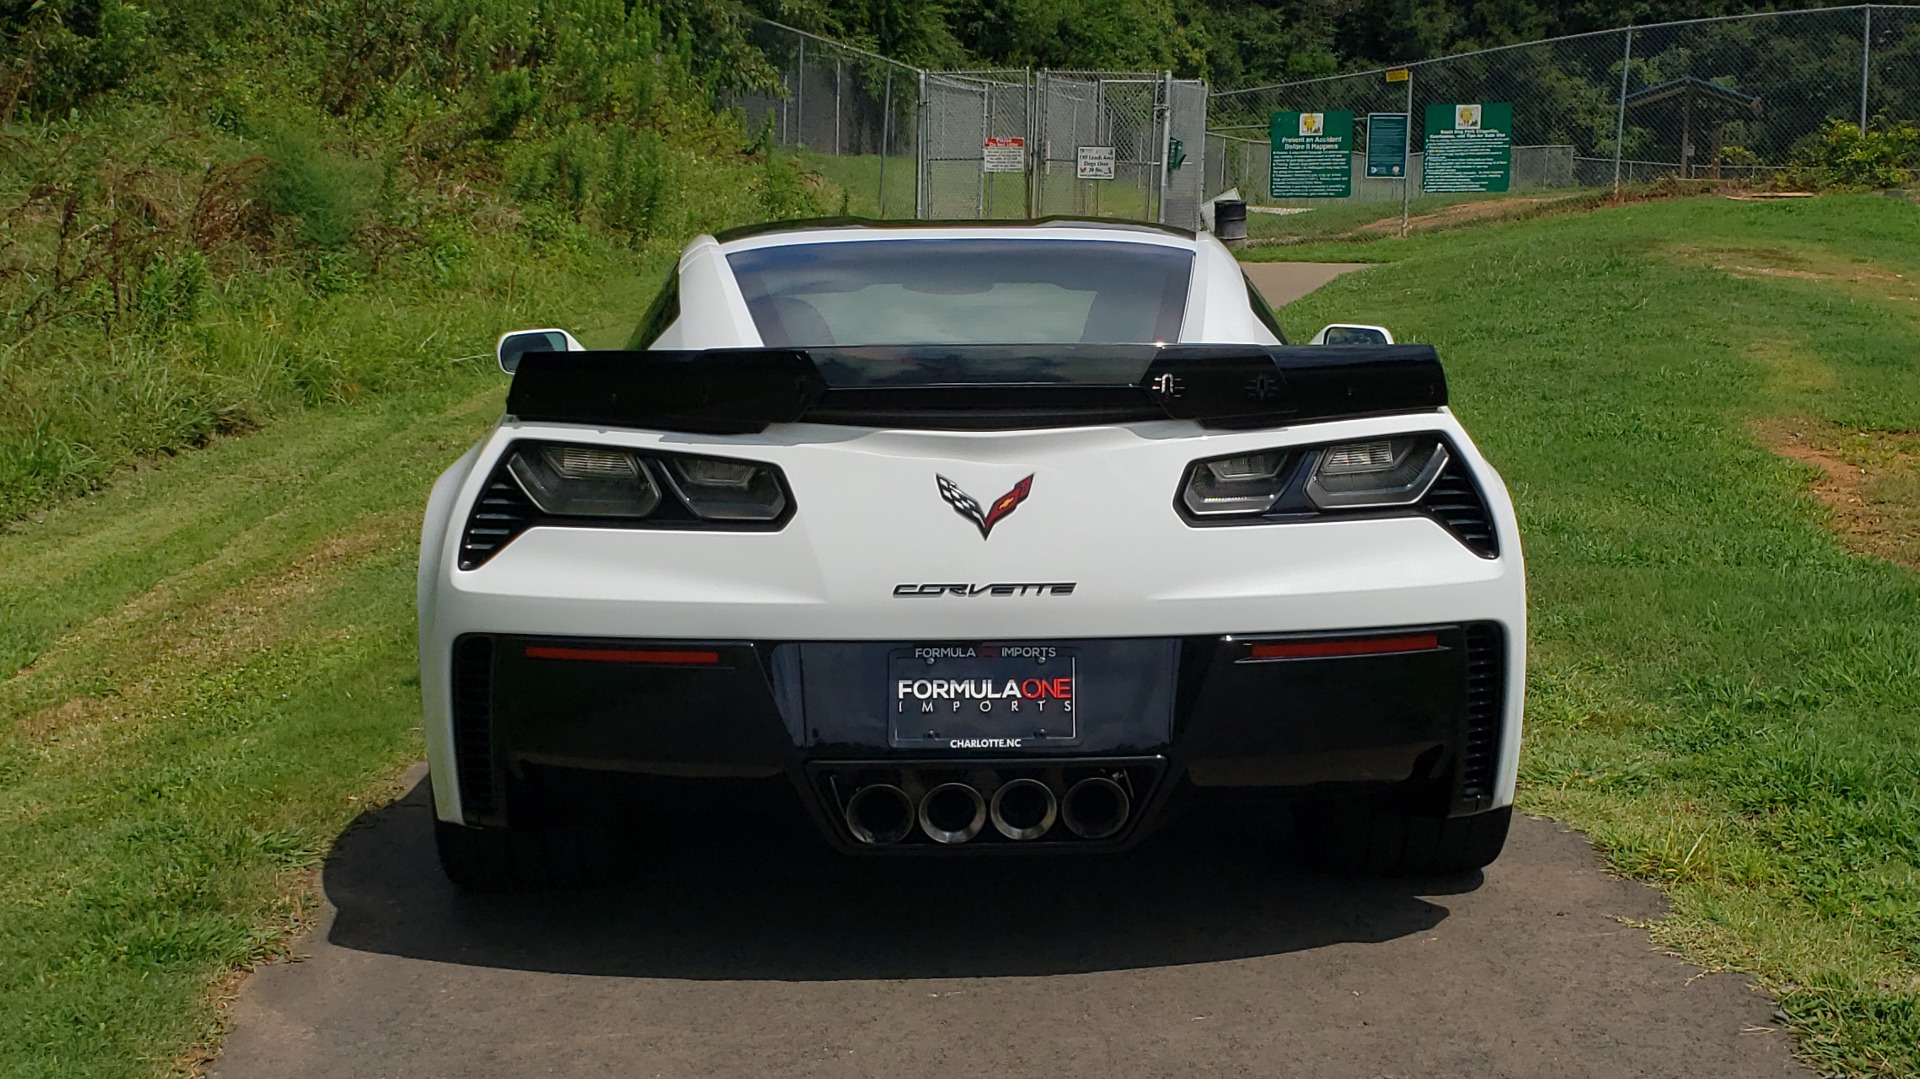 Used 2015 Chevrolet CORVETTE Z06 3LZ / 6.2L SUPERCHARGED 650HP / NAV / BOSE / REARVIEW for sale Sold at Formula Imports in Charlotte NC 28227 13